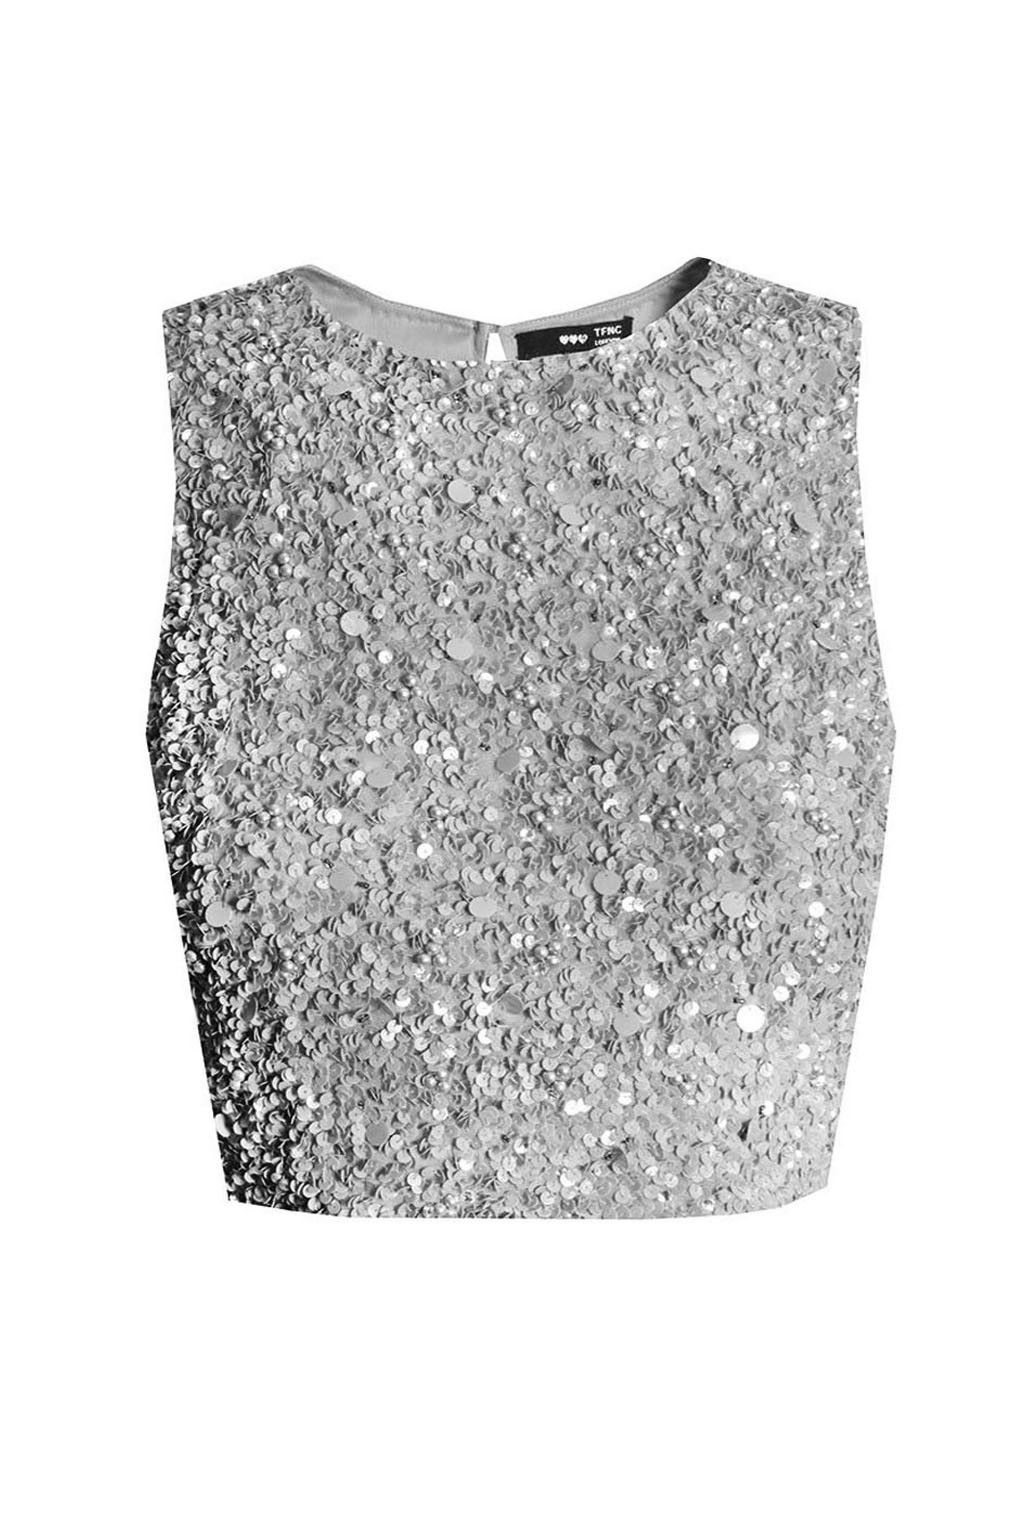 67450de185dbe Lace   Beads Picasso Grey Sequin Top